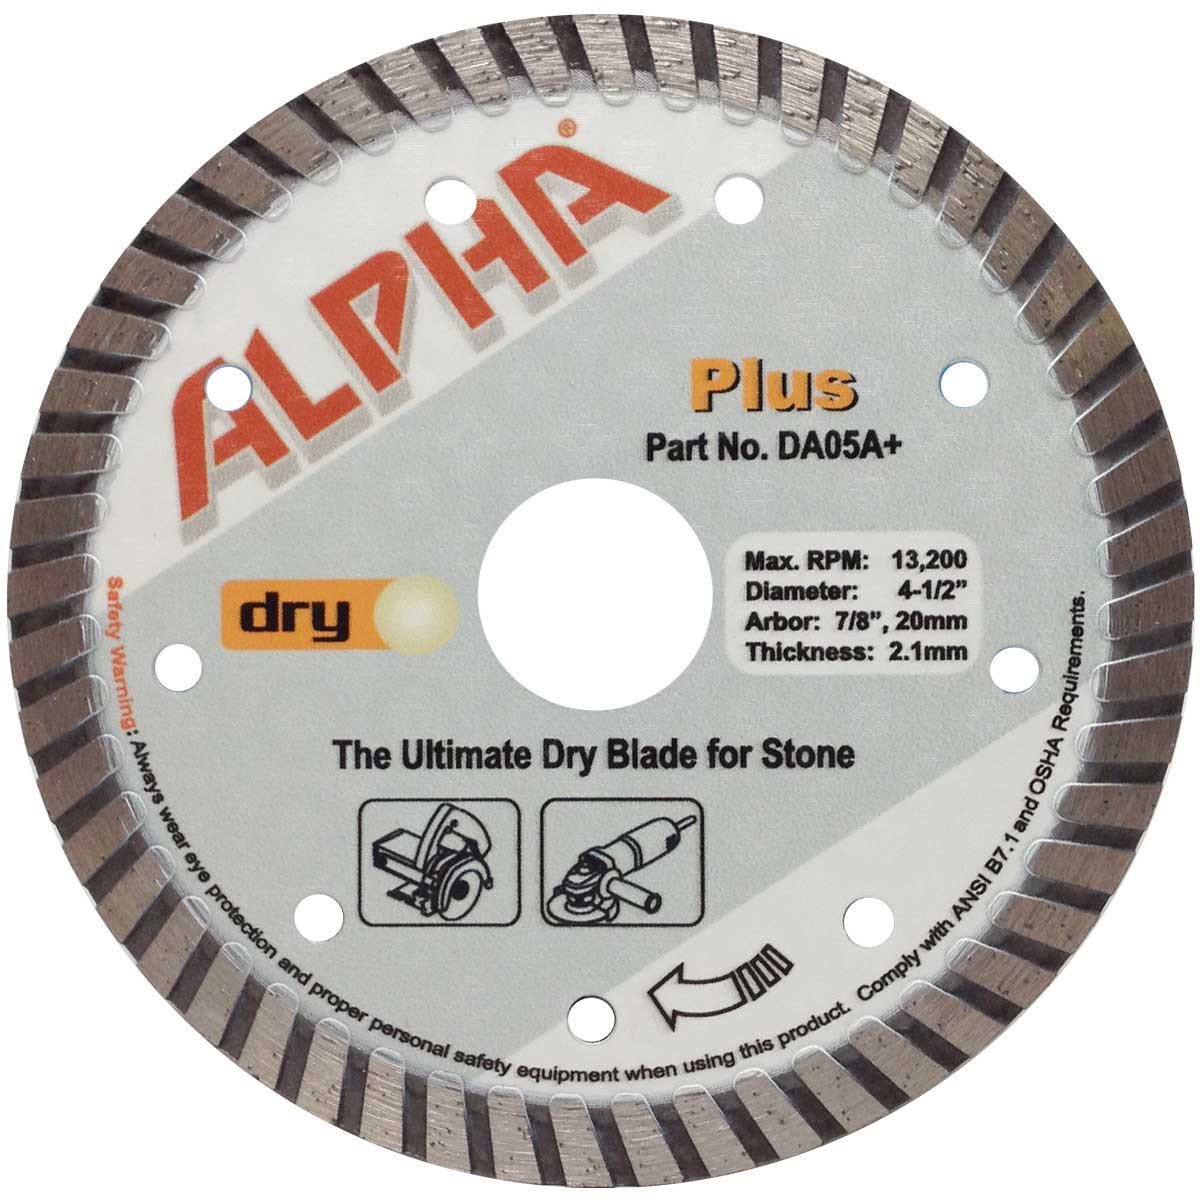 alpha plus 4i 1/2in dry cutting diamond blade